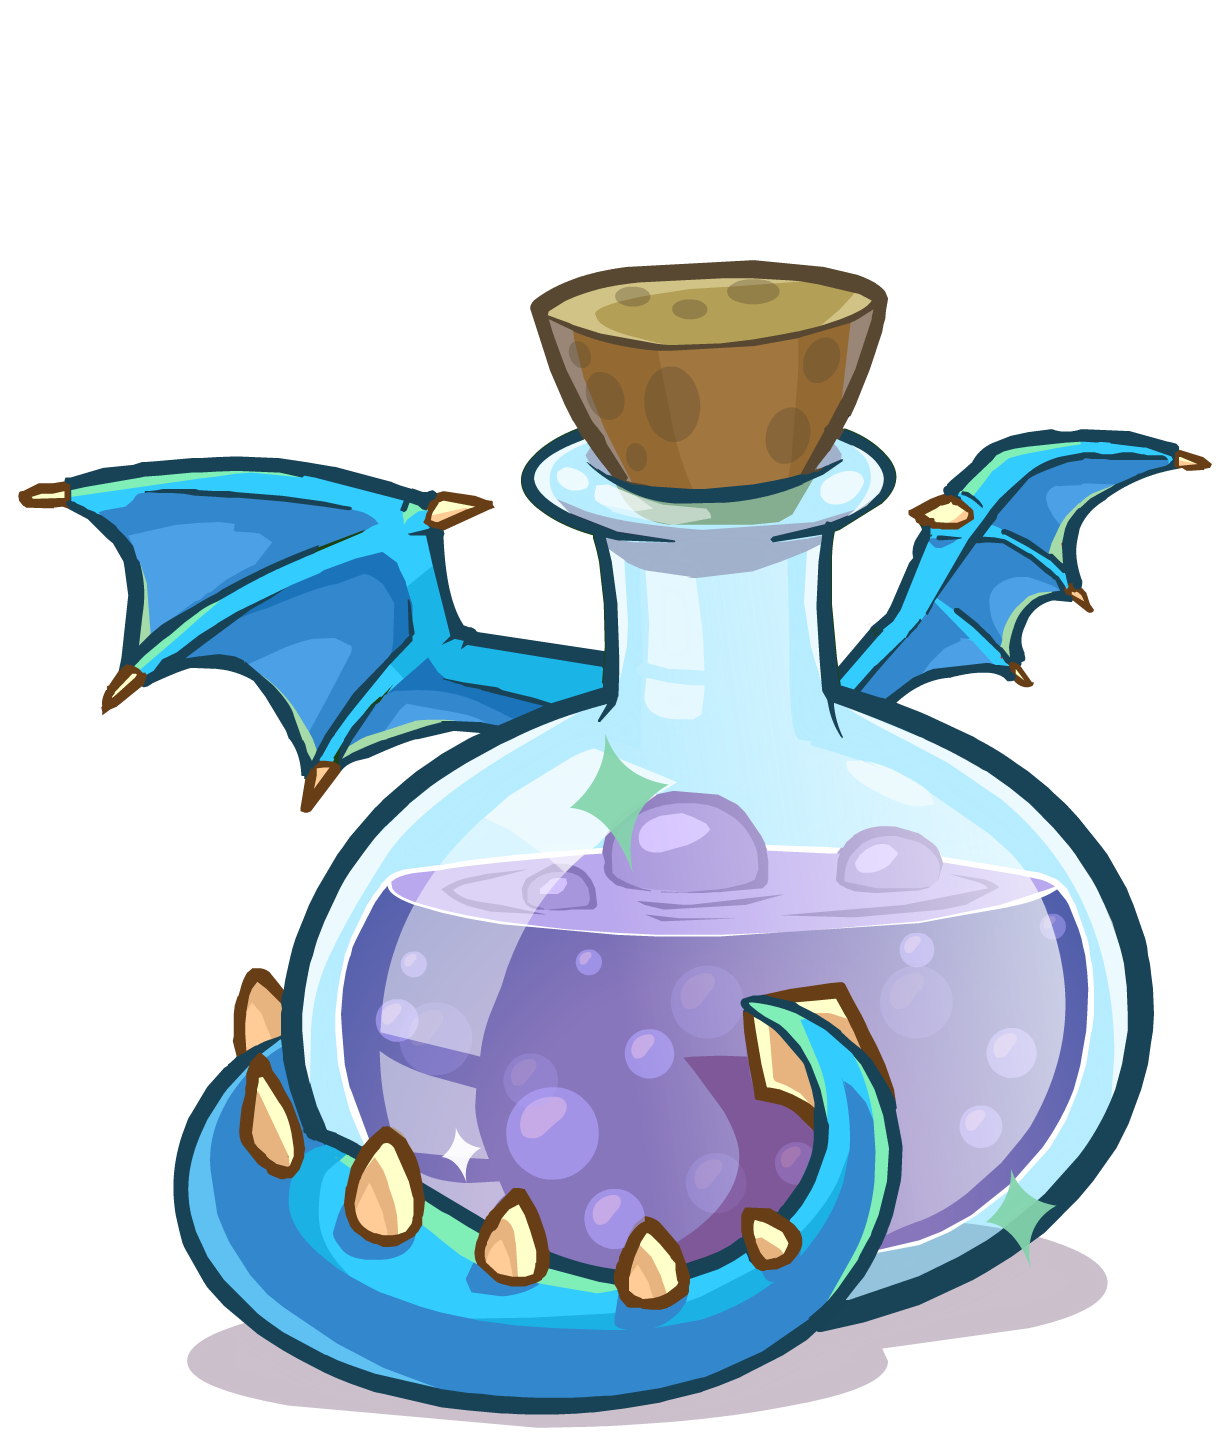 Image potions blue puffle. September clipart medieval food